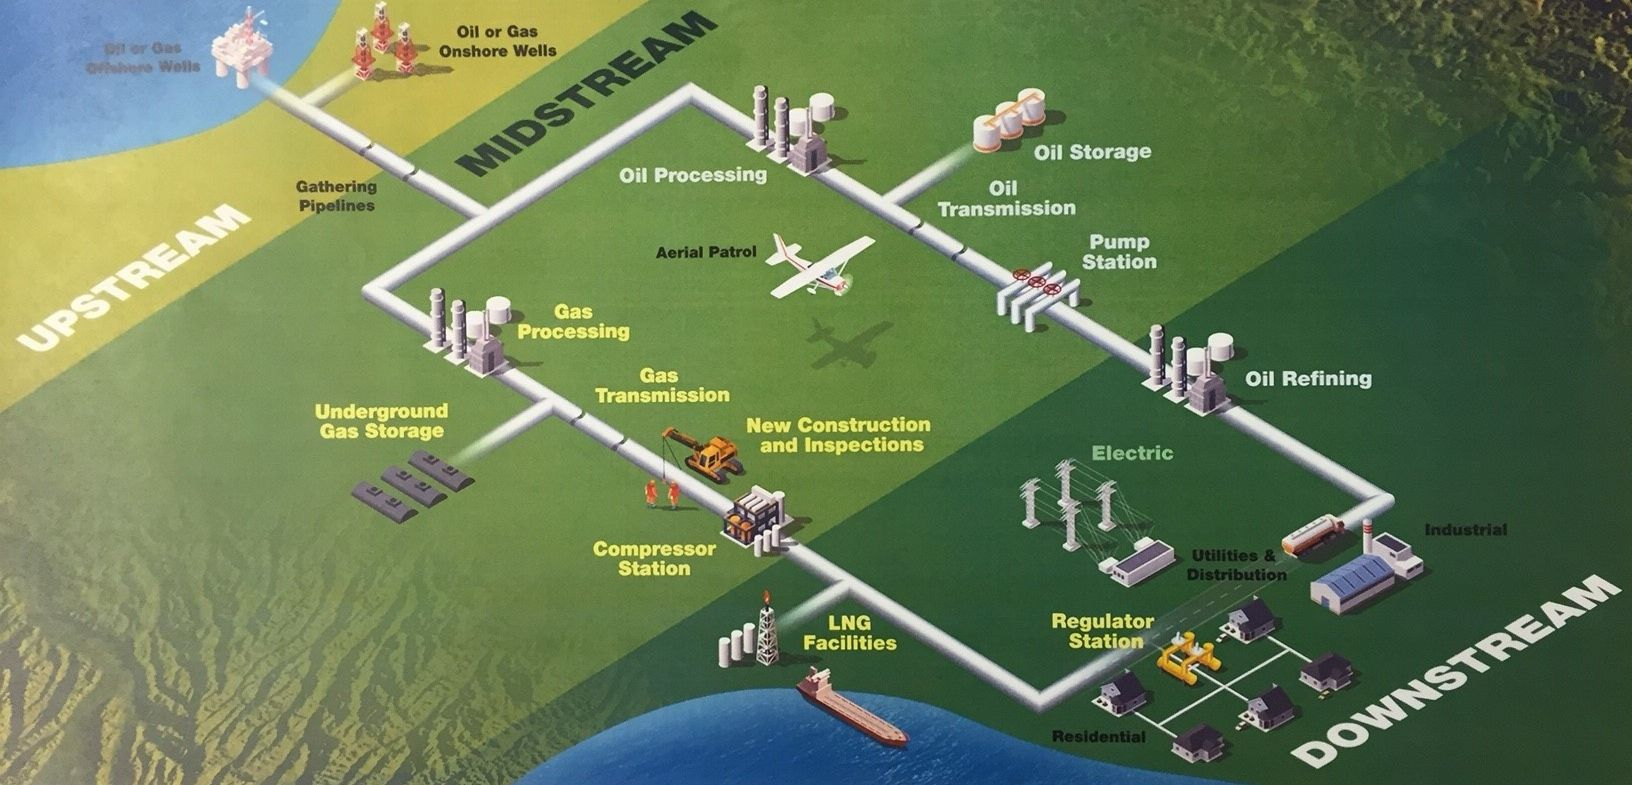 medium resolution of oil and gas production process flow diagram google search